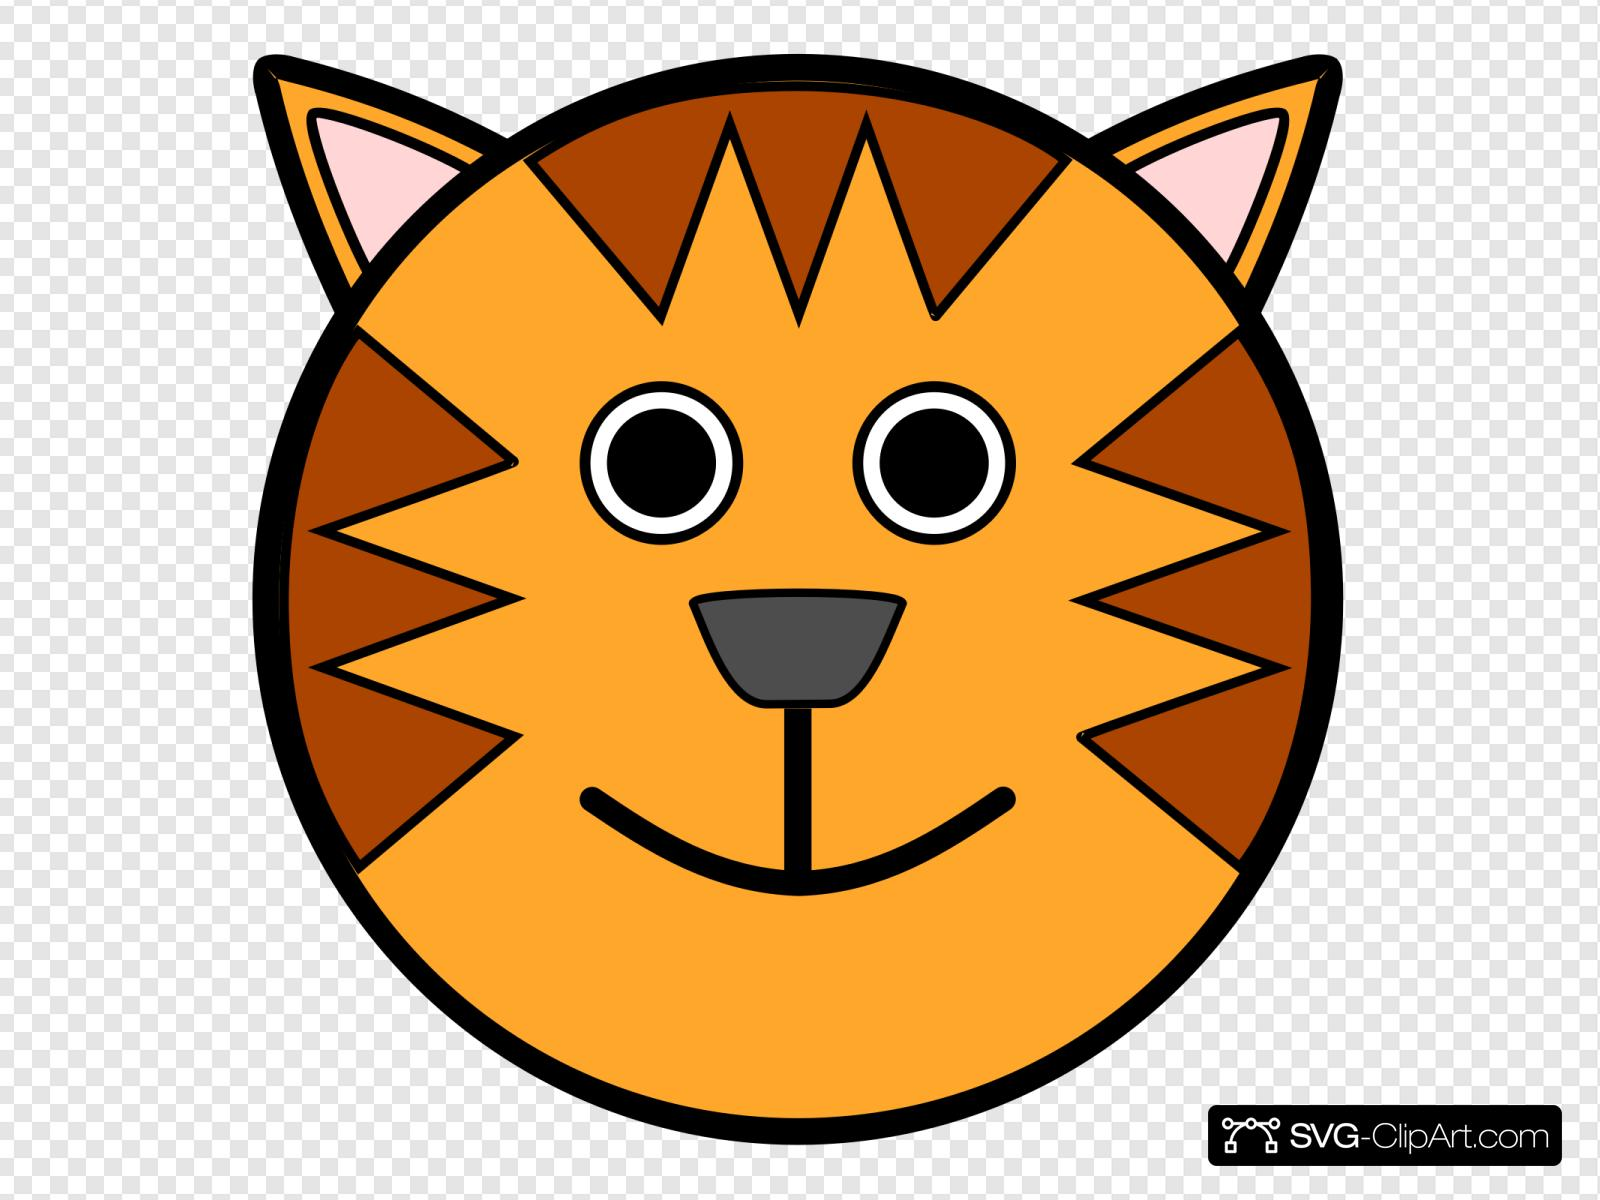 Tiger Face Clip art, Icon and SVG.